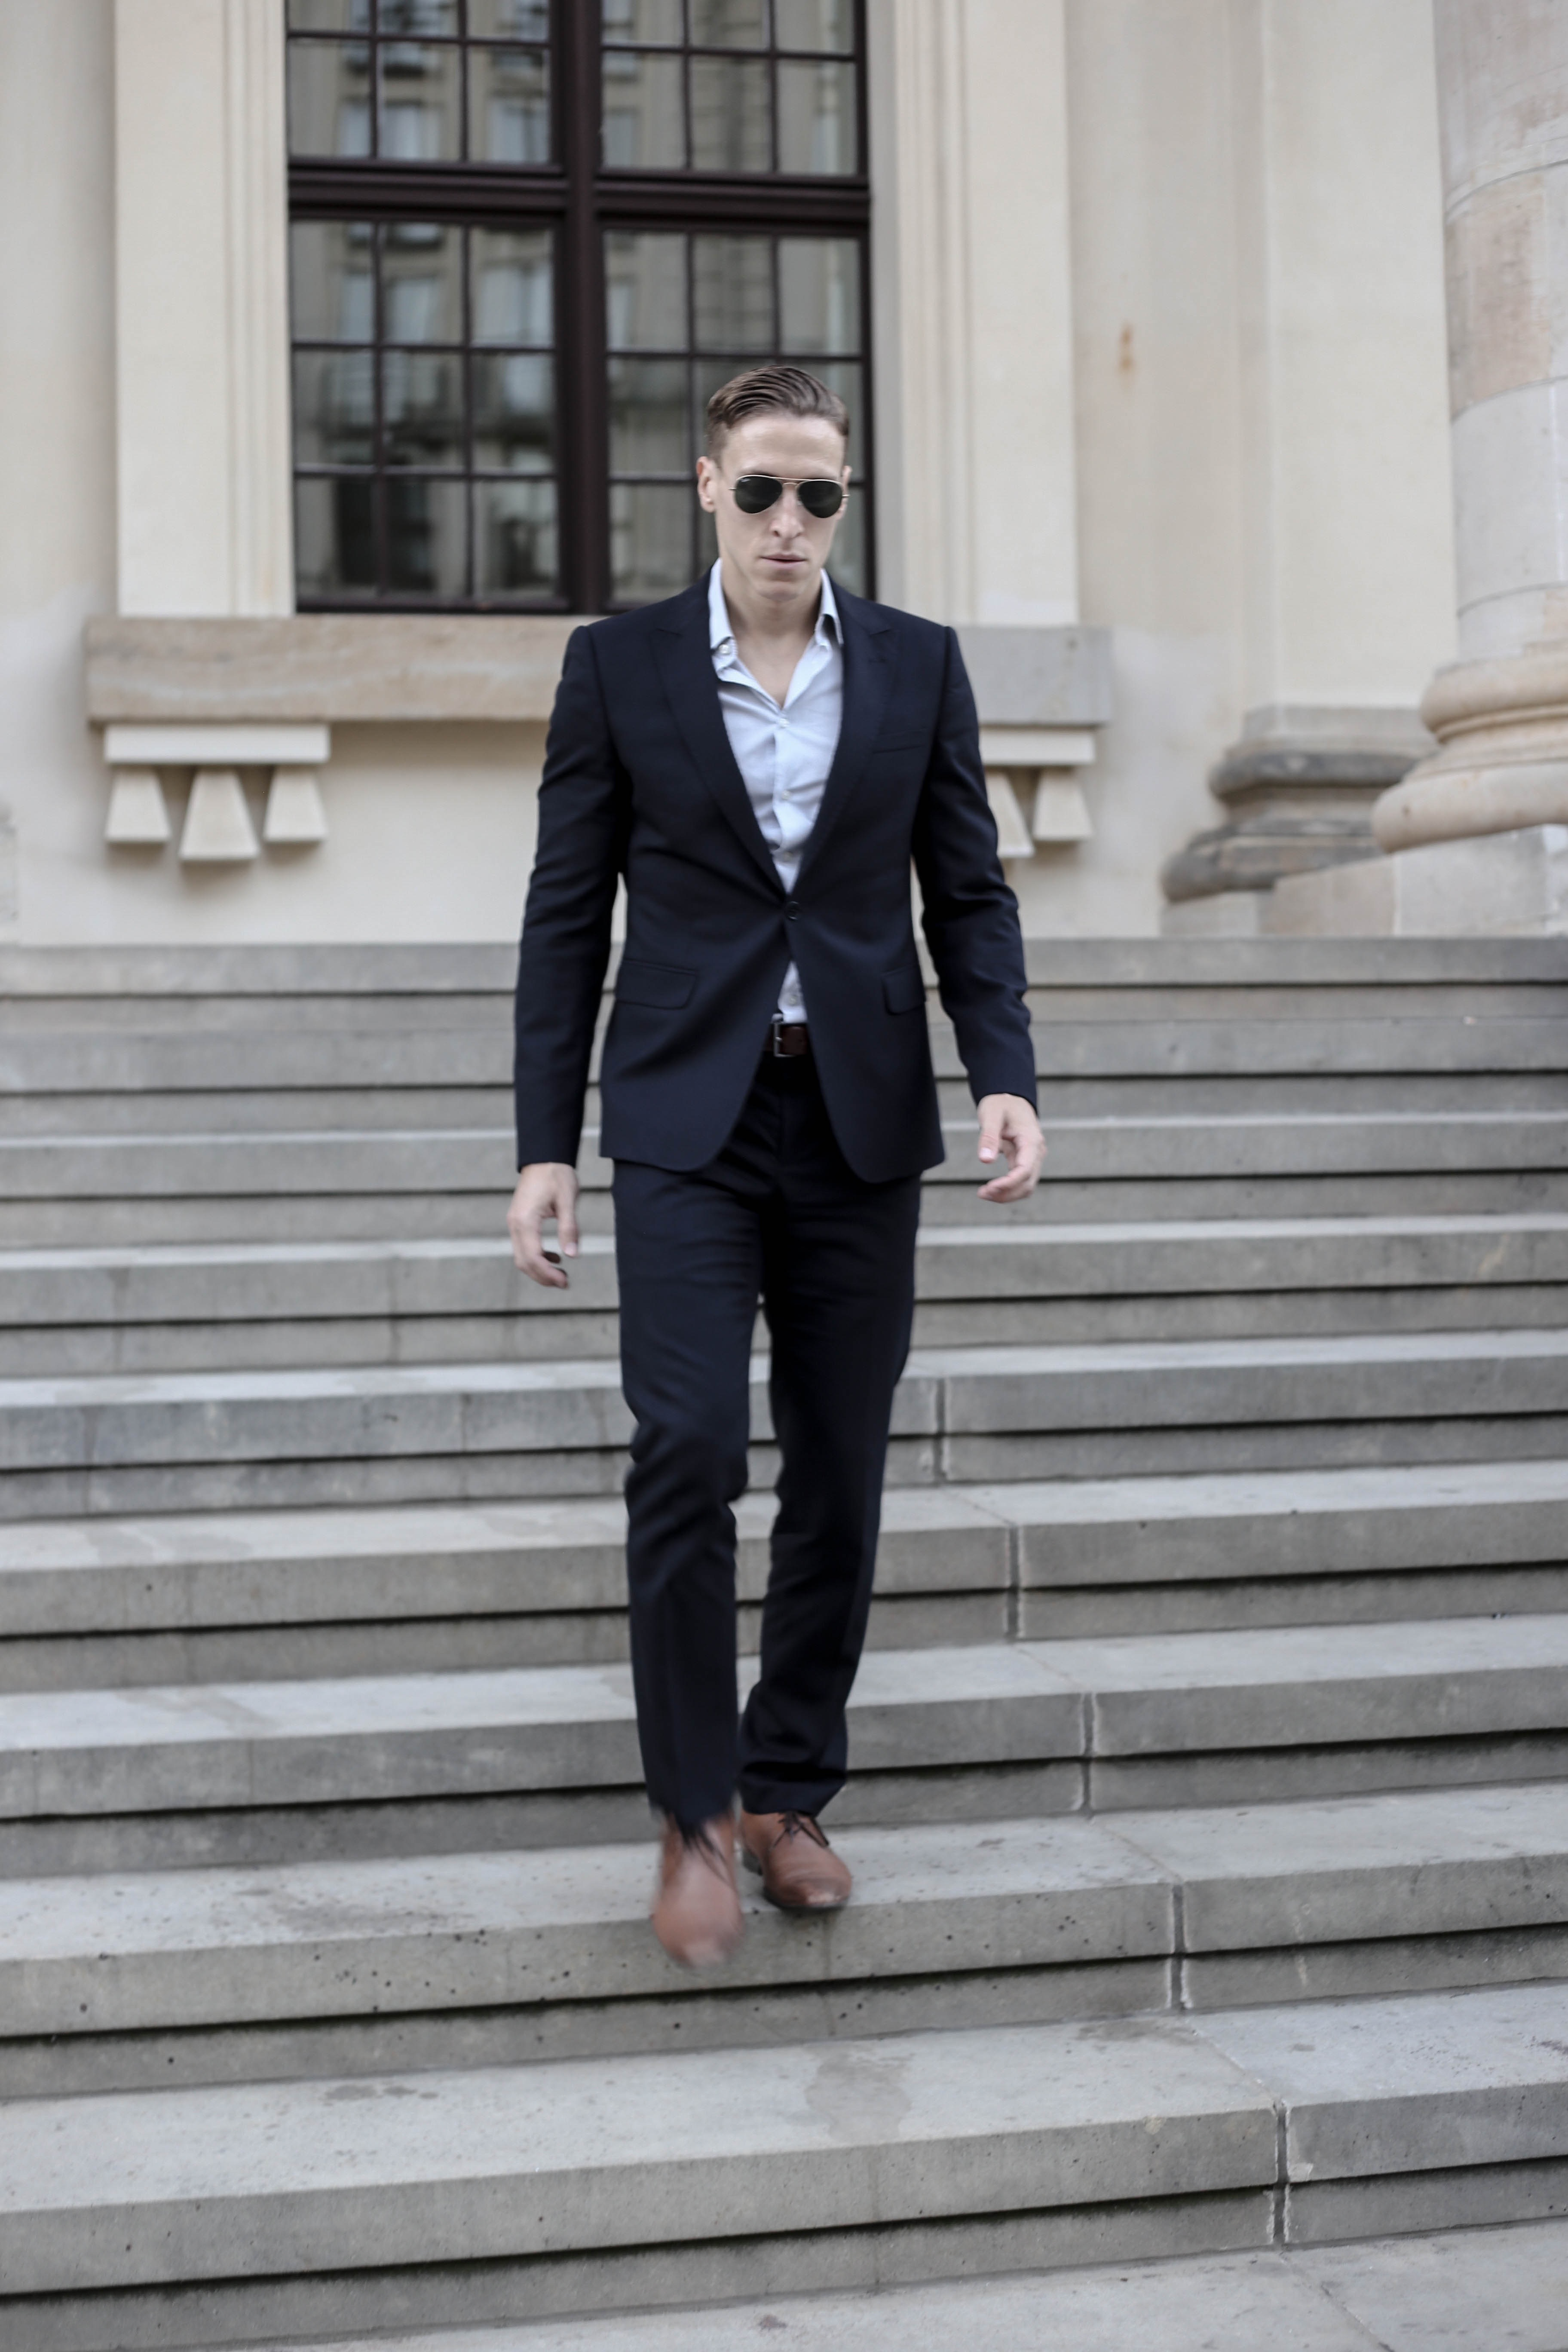 navy-blauer-armani-anzug-cognac-hugo-boss-schnuerer-business-look-menfashion-modeblog-berlin_2715